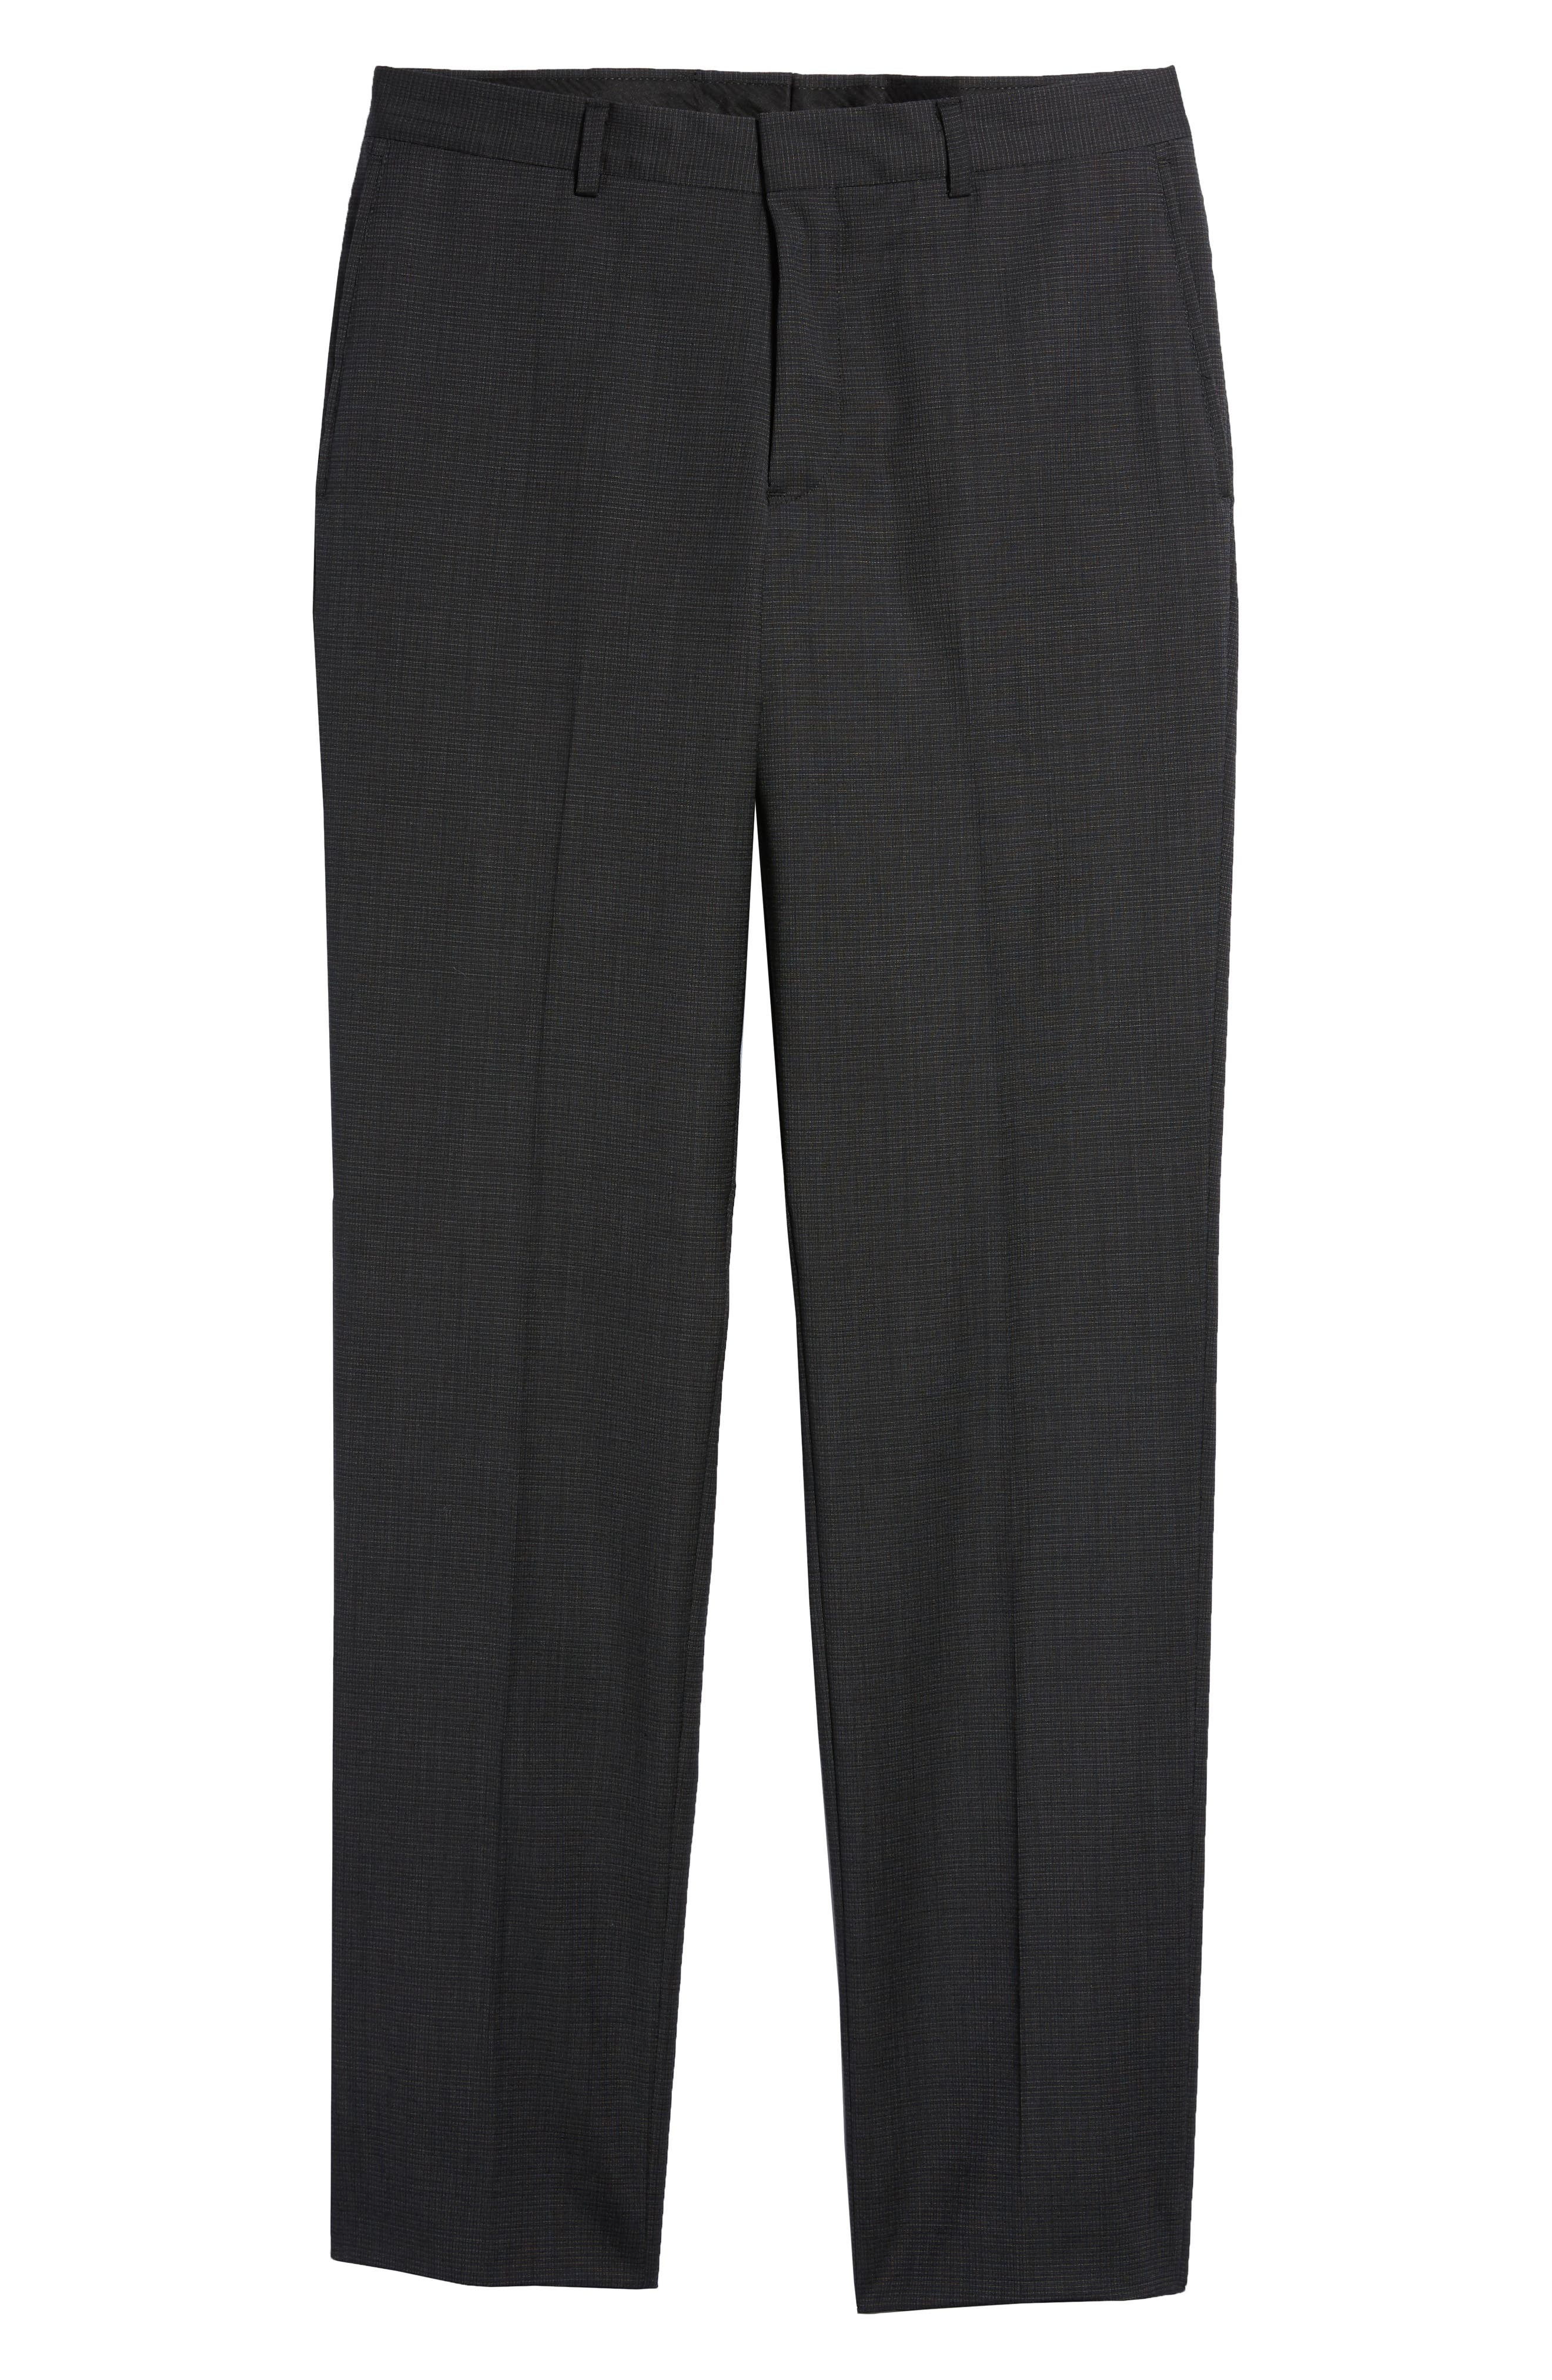 Tech-Smart Flat Front Stretch Wool Pants,                             Alternate thumbnail 6, color,                             021